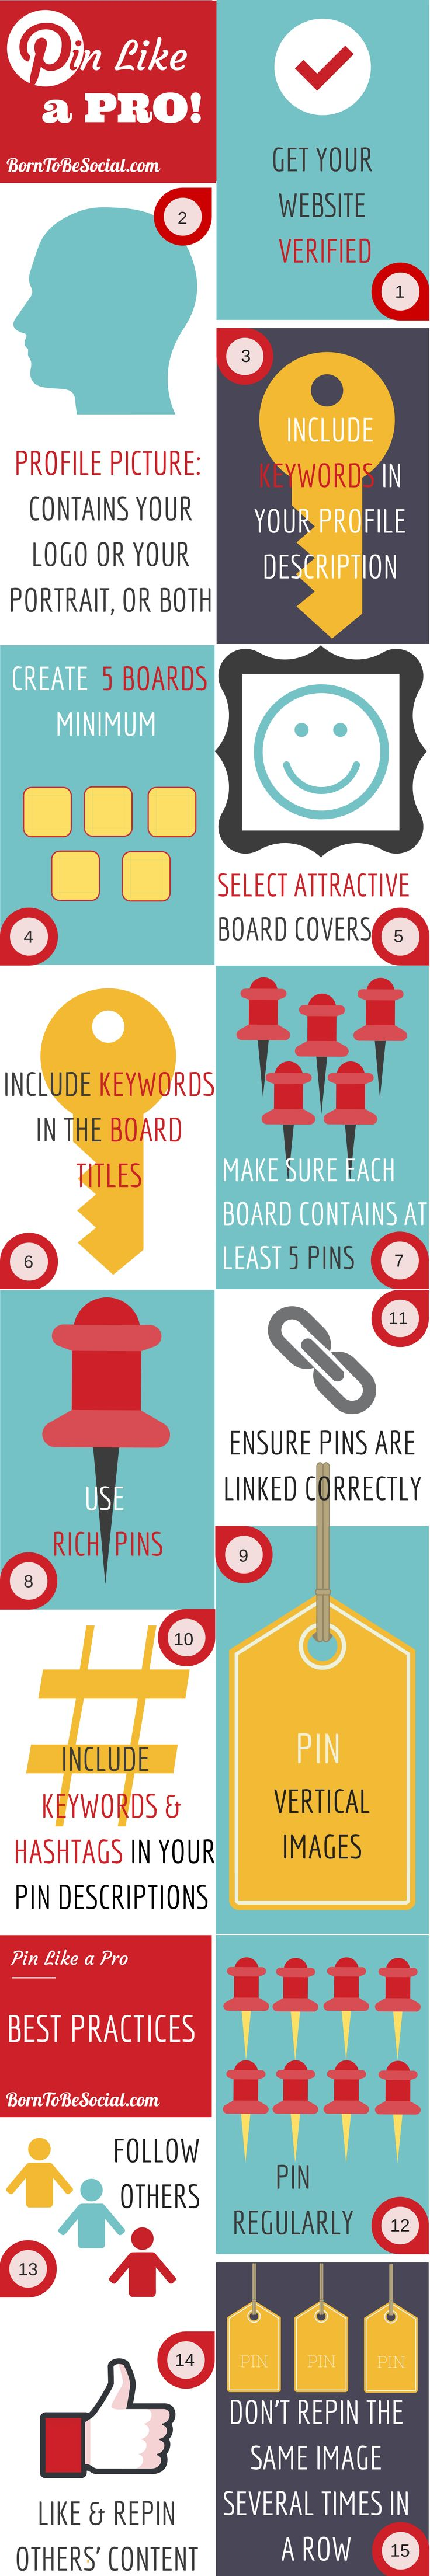 #Pinterest essentials in an #infographic